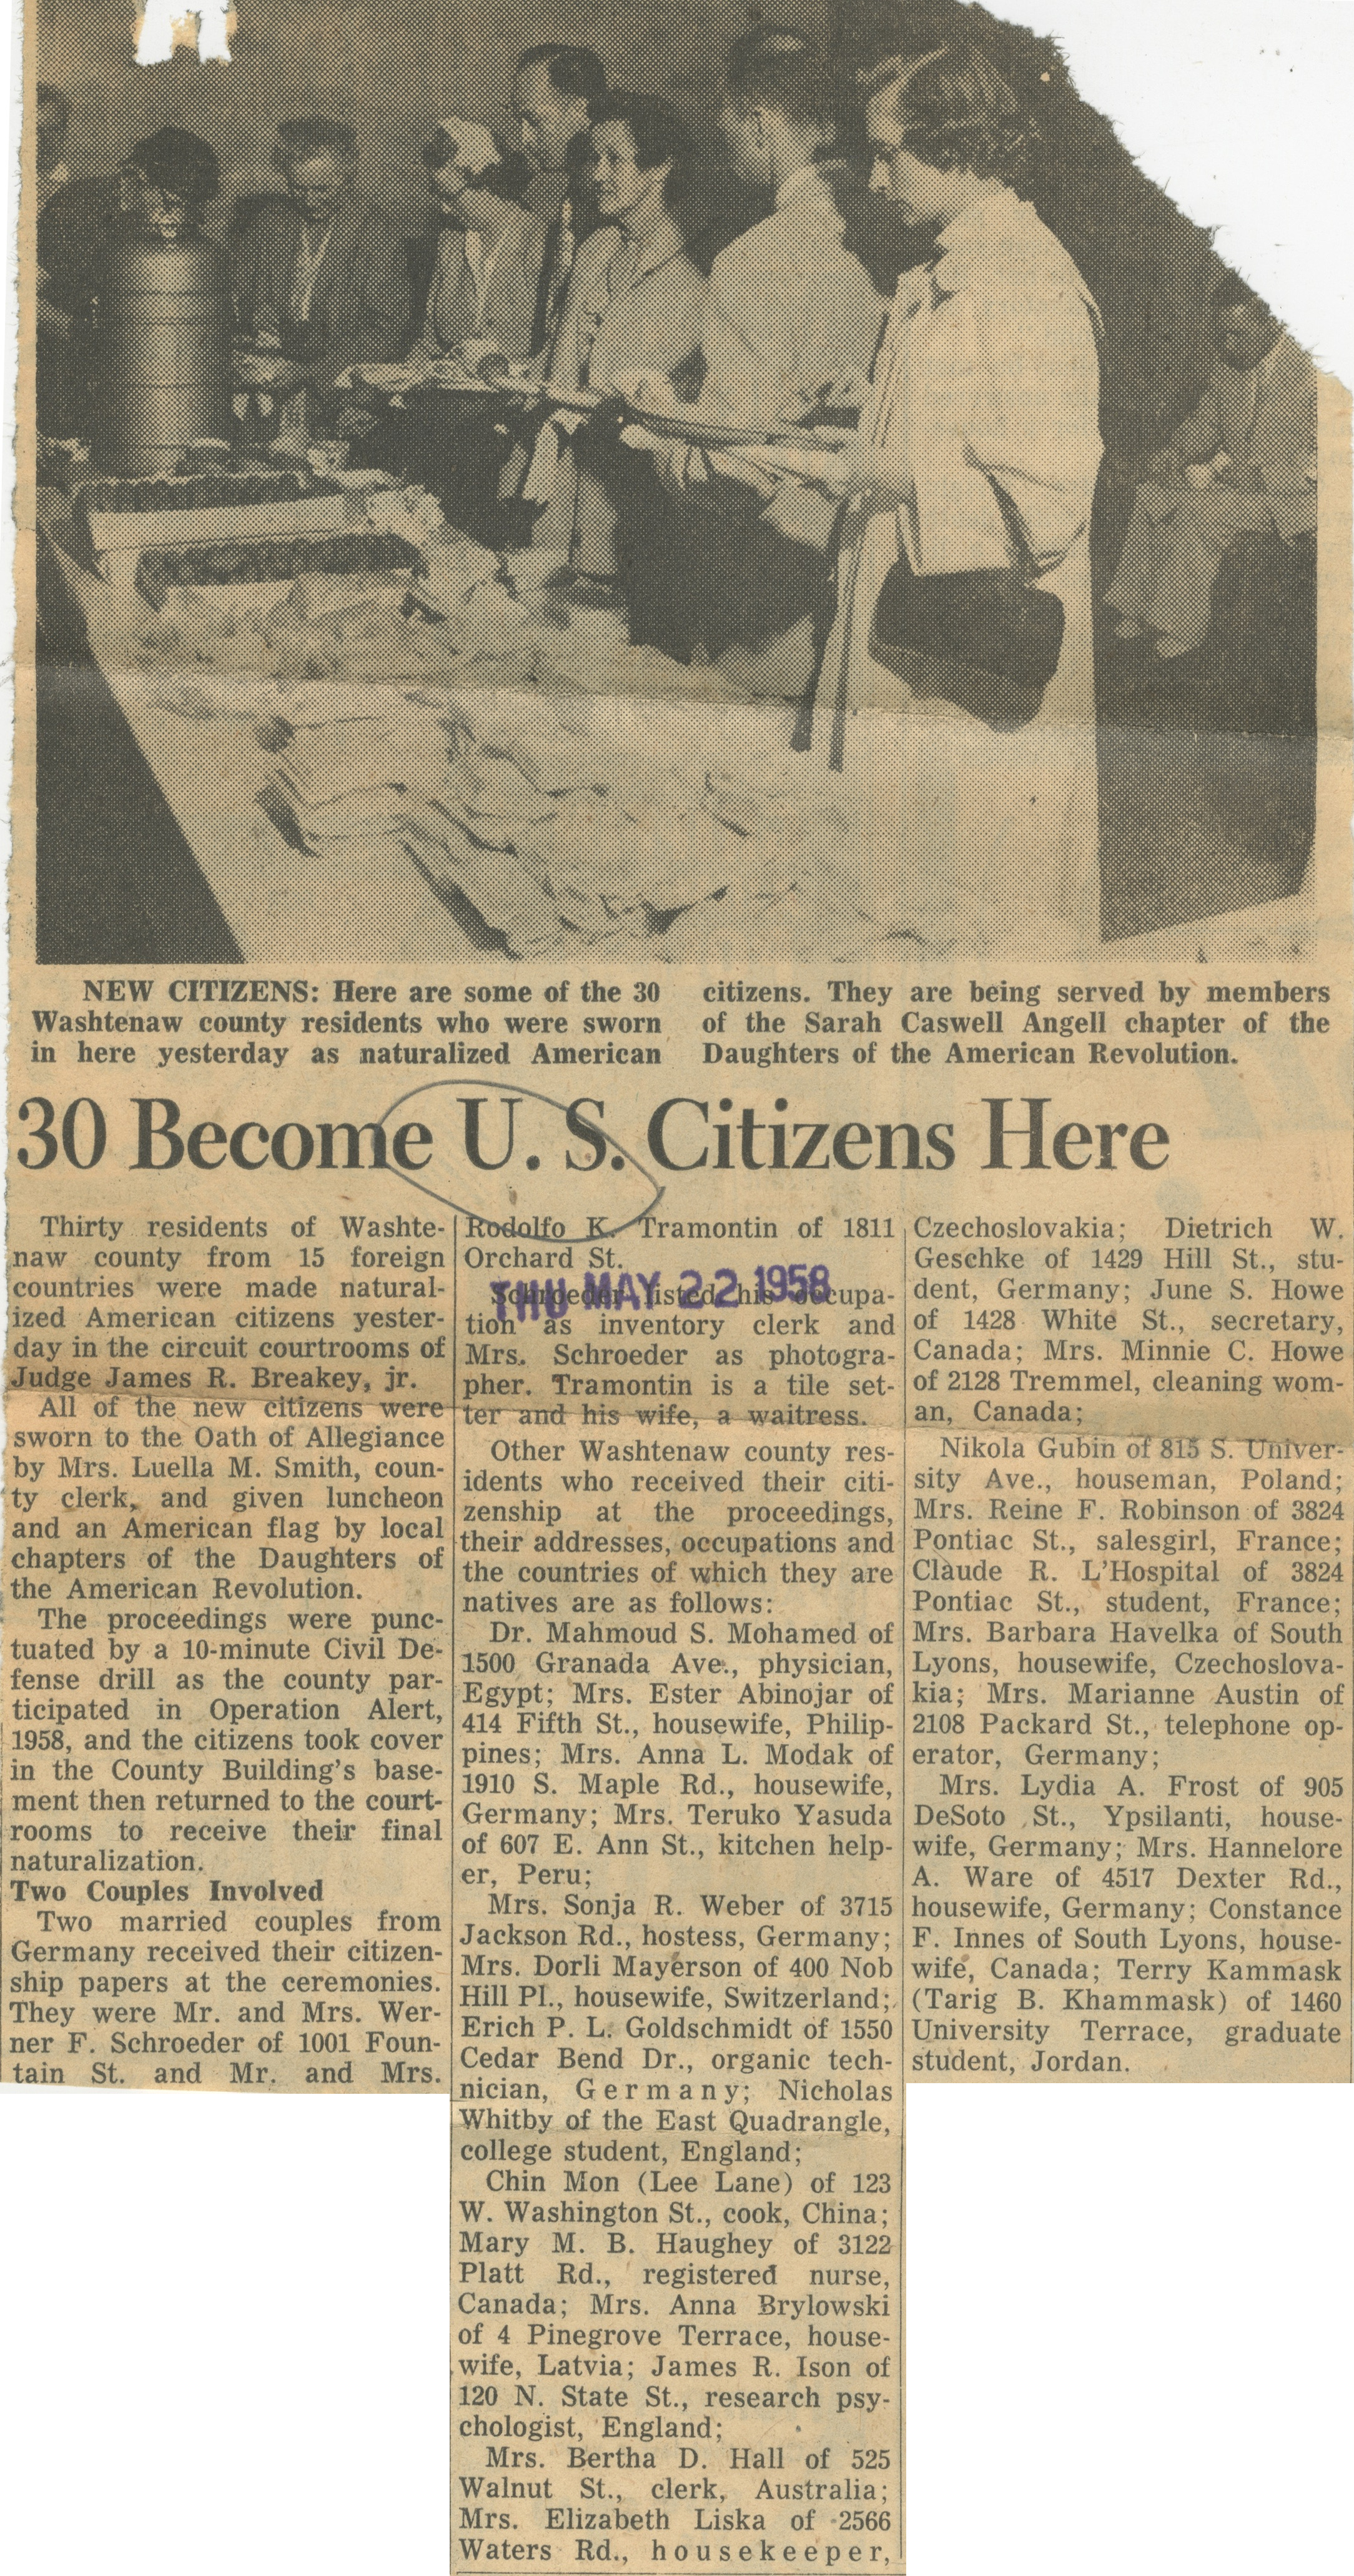 30 Become U.S. Citizens Here image